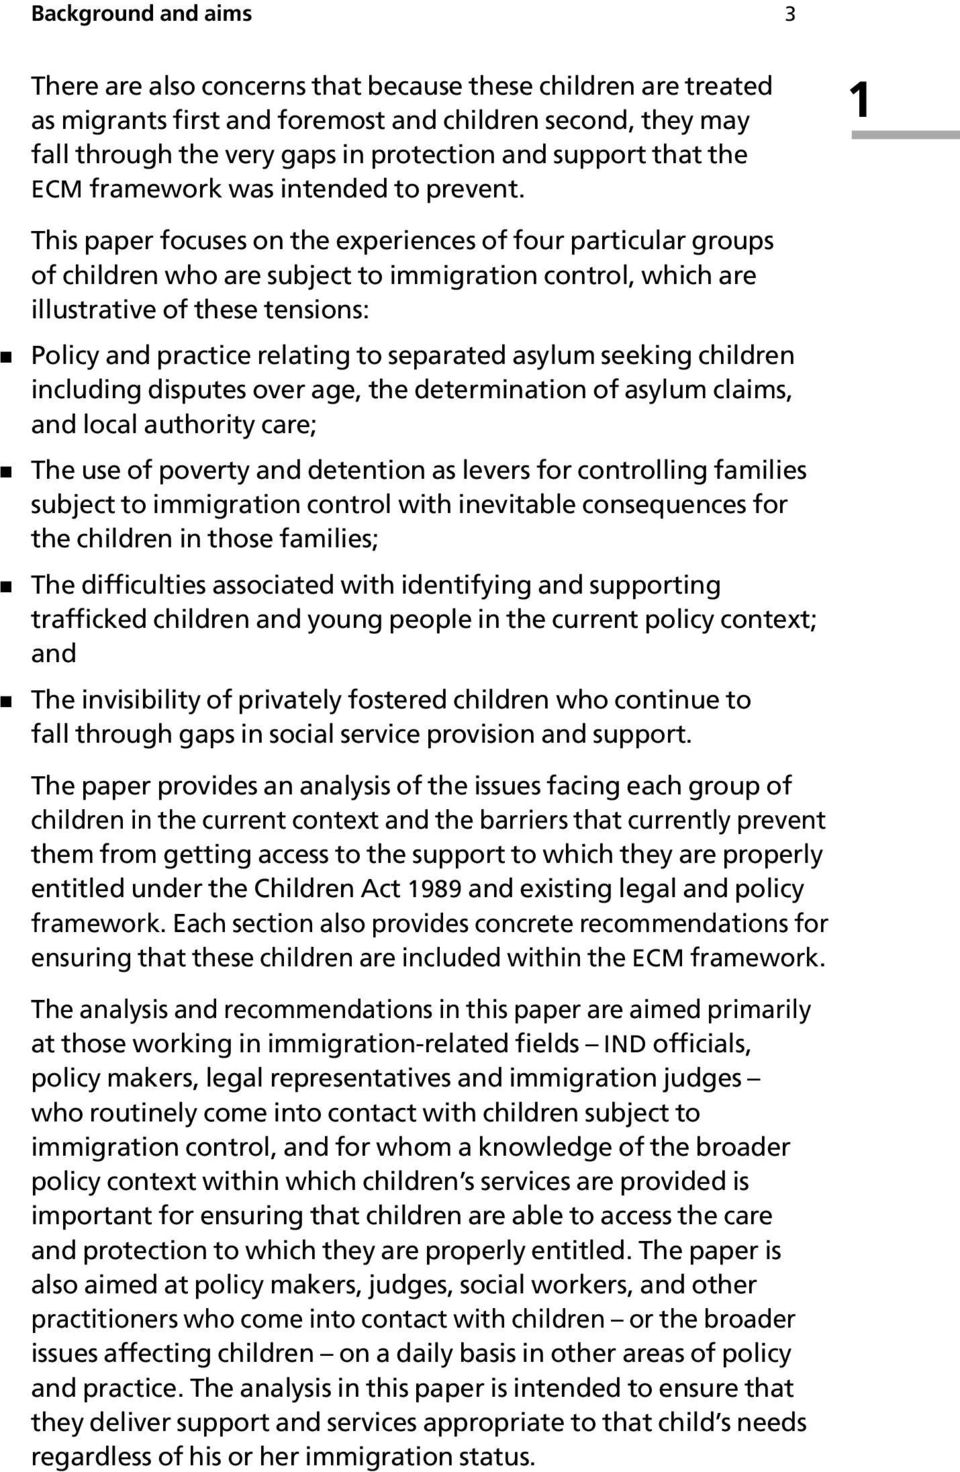 1 This paper focuses on the experiences of four particular groups of children who are subject to immigration control, which are illustrative of these tensions: Policy and practice relating to